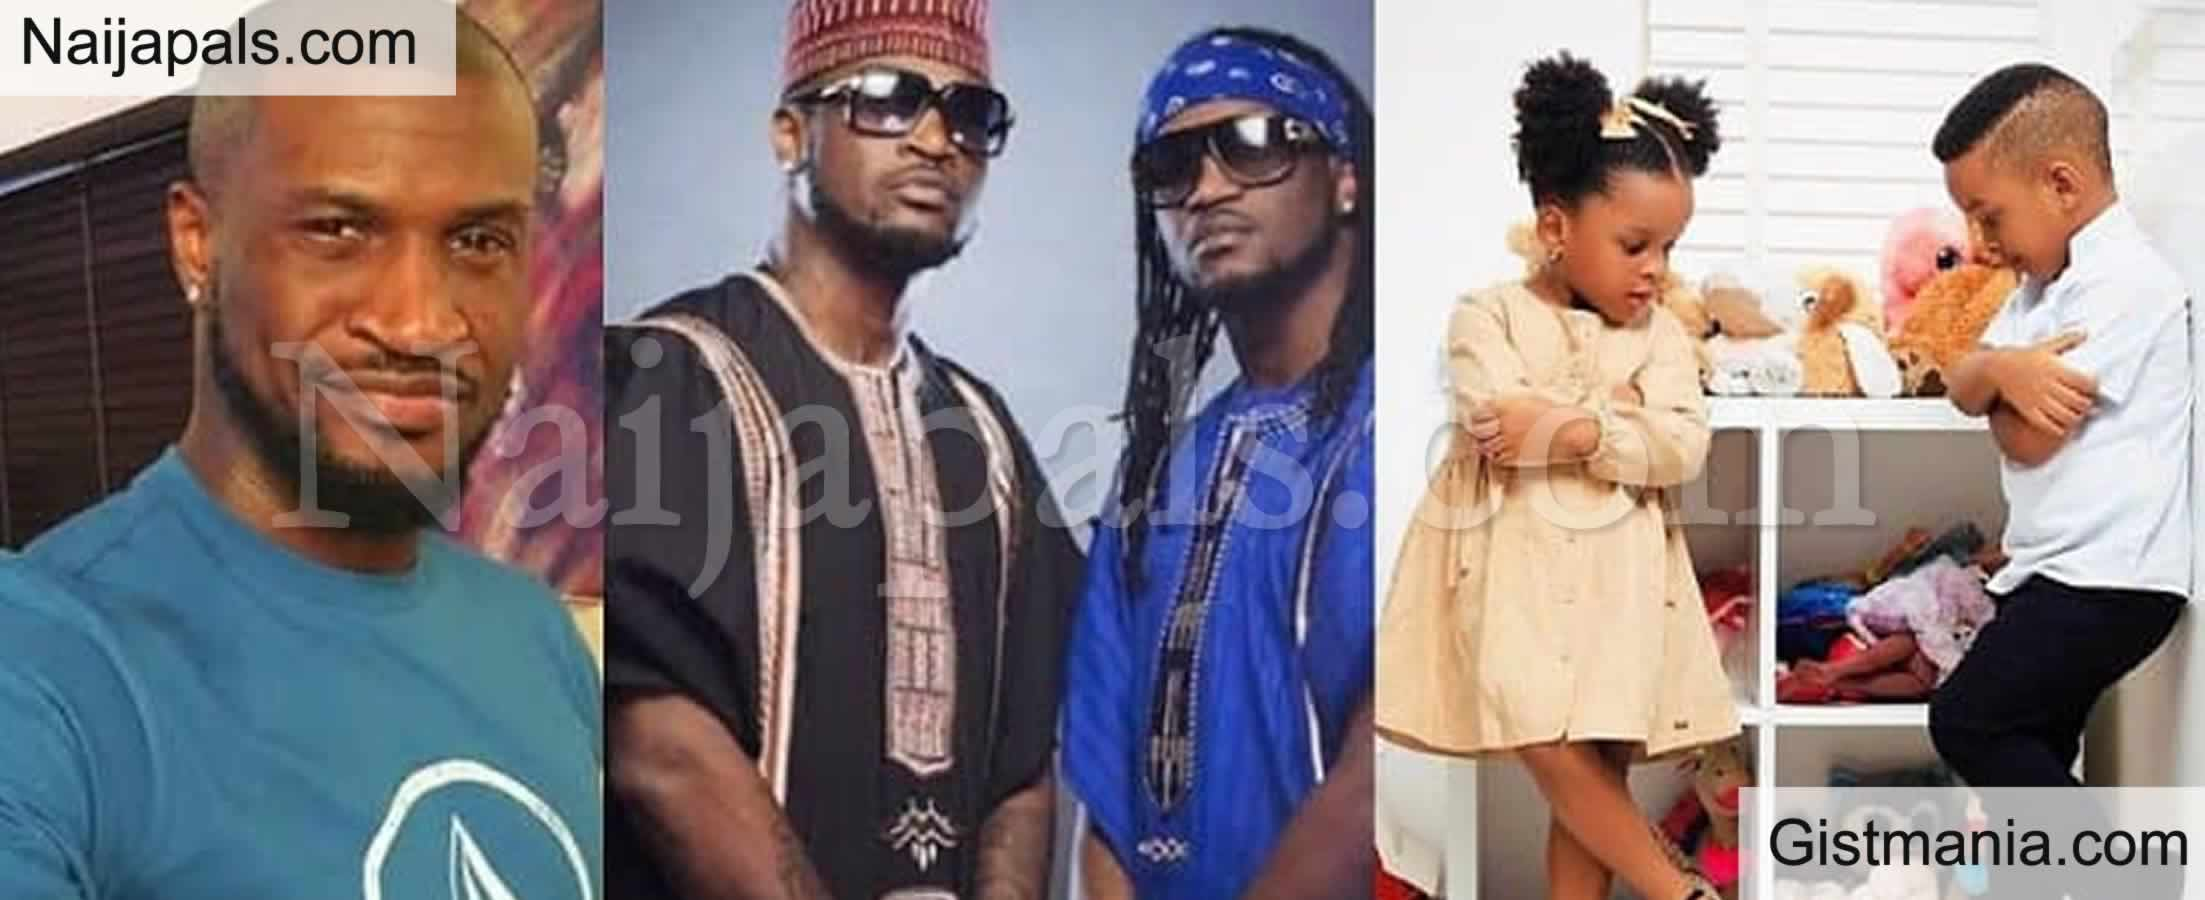 <img alt='.' class='lazyload' data-src='https://img.gistmania.com/emot/cake.png' /> Grudges Aside! <b>Peter Okoye Celebrates His Twin Brother, Paul's Twins On Their Birthday</b>